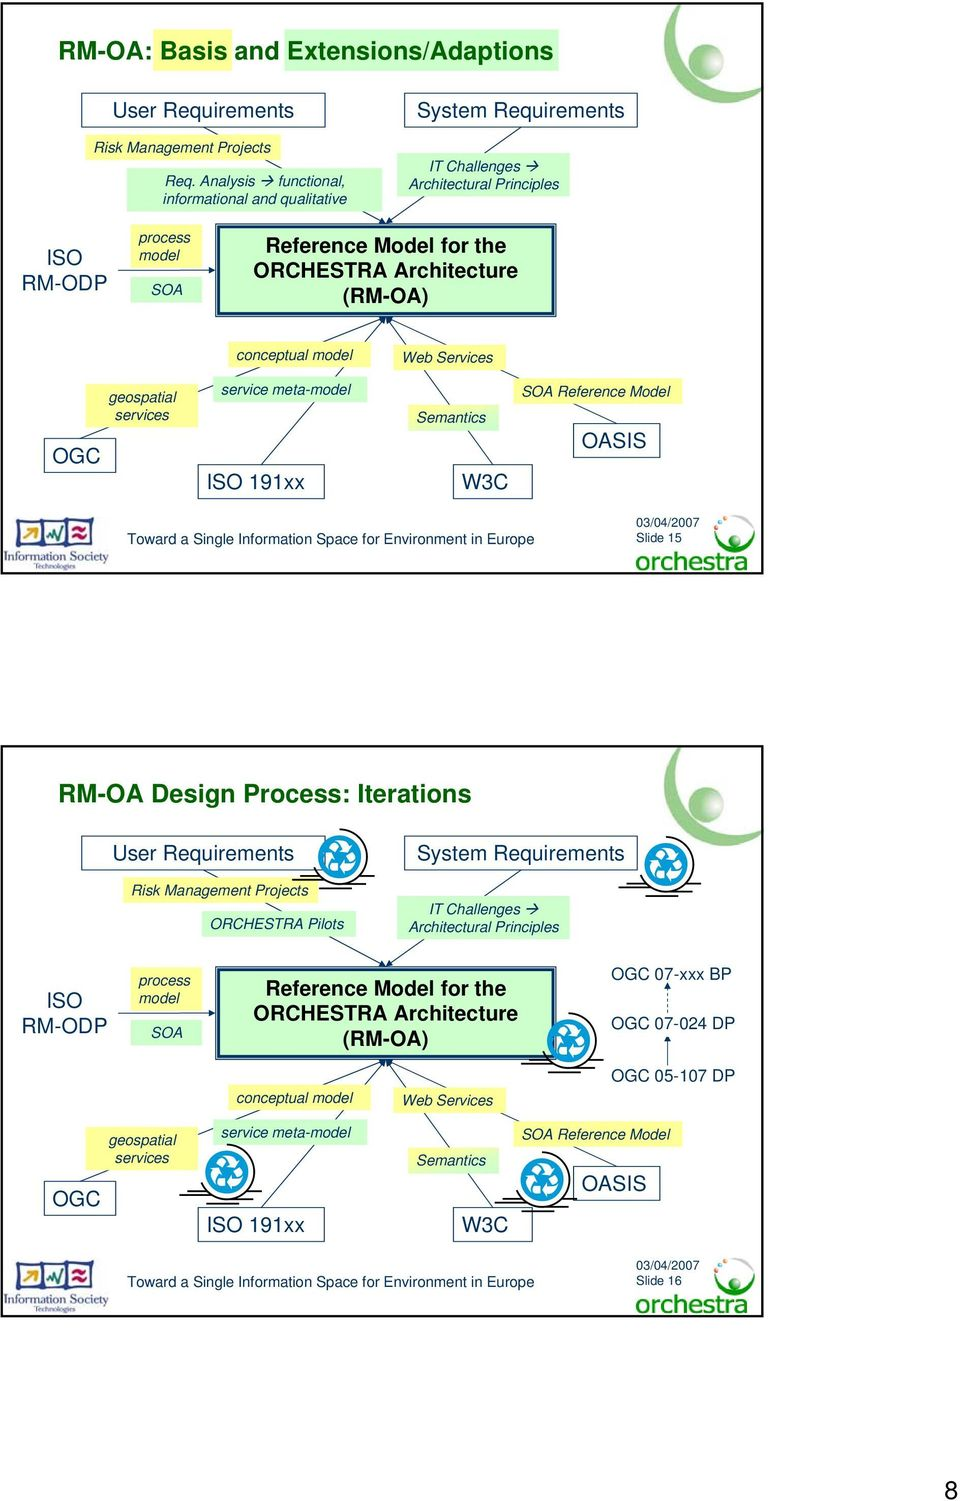 conceptual model Web s OGC geospatial services service meta-model ISO 191xx Semantics W3C SOA Reference Model OASIS Slide 15 RM-OA Design Process: Iterations User Requirements Risk Management